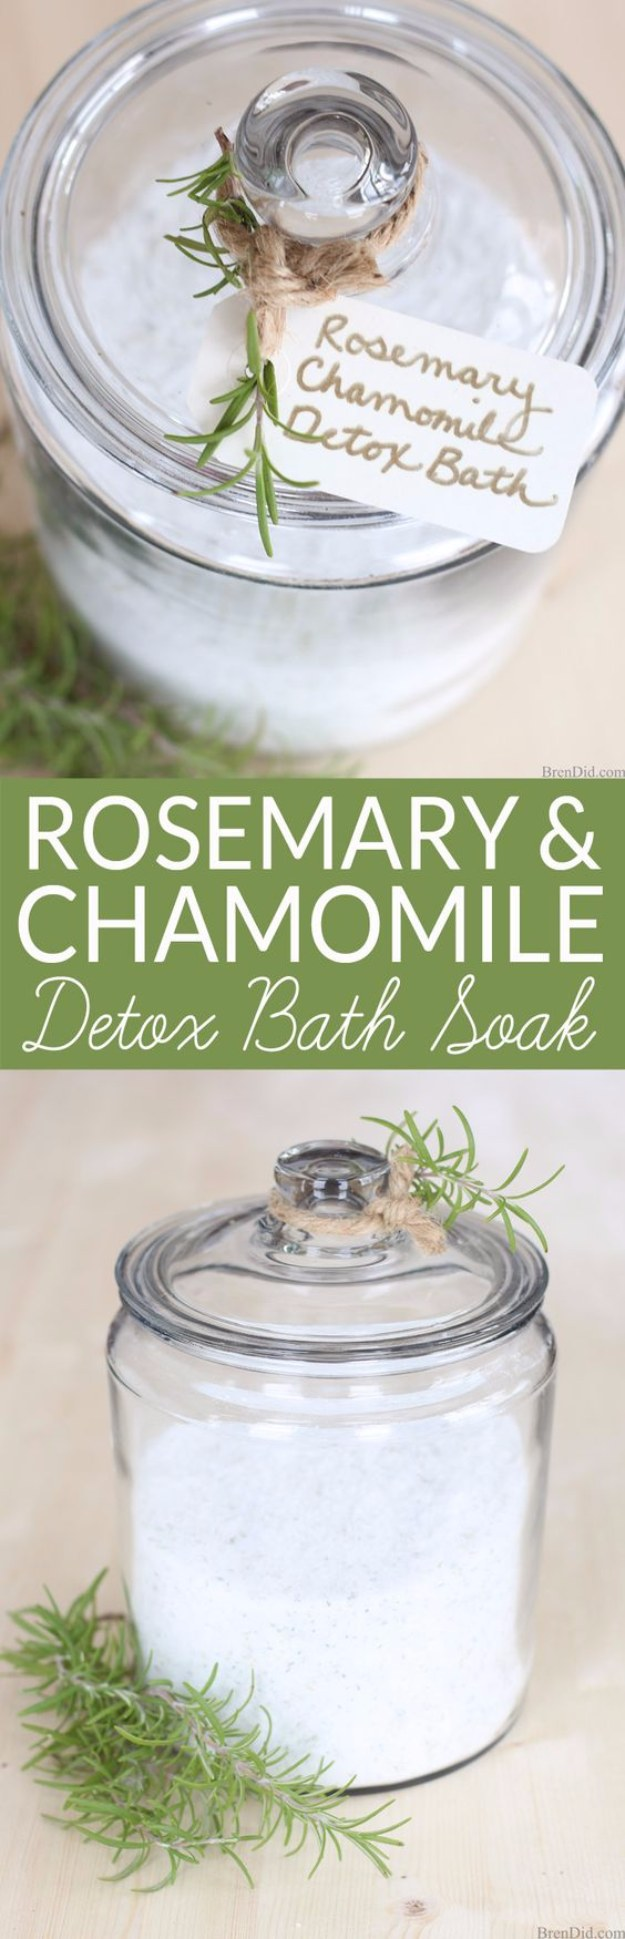 DIY Detox Recipes, Ideas and Tips - Rosemary Chamomile Detox Bath Soak - How to Detox Your Body, Brain and Skin for Health and Weight Loss. Detox Drinks, Waters, Teas, Wraps, Soup, Masks and Skincare Products You Can Make At Home